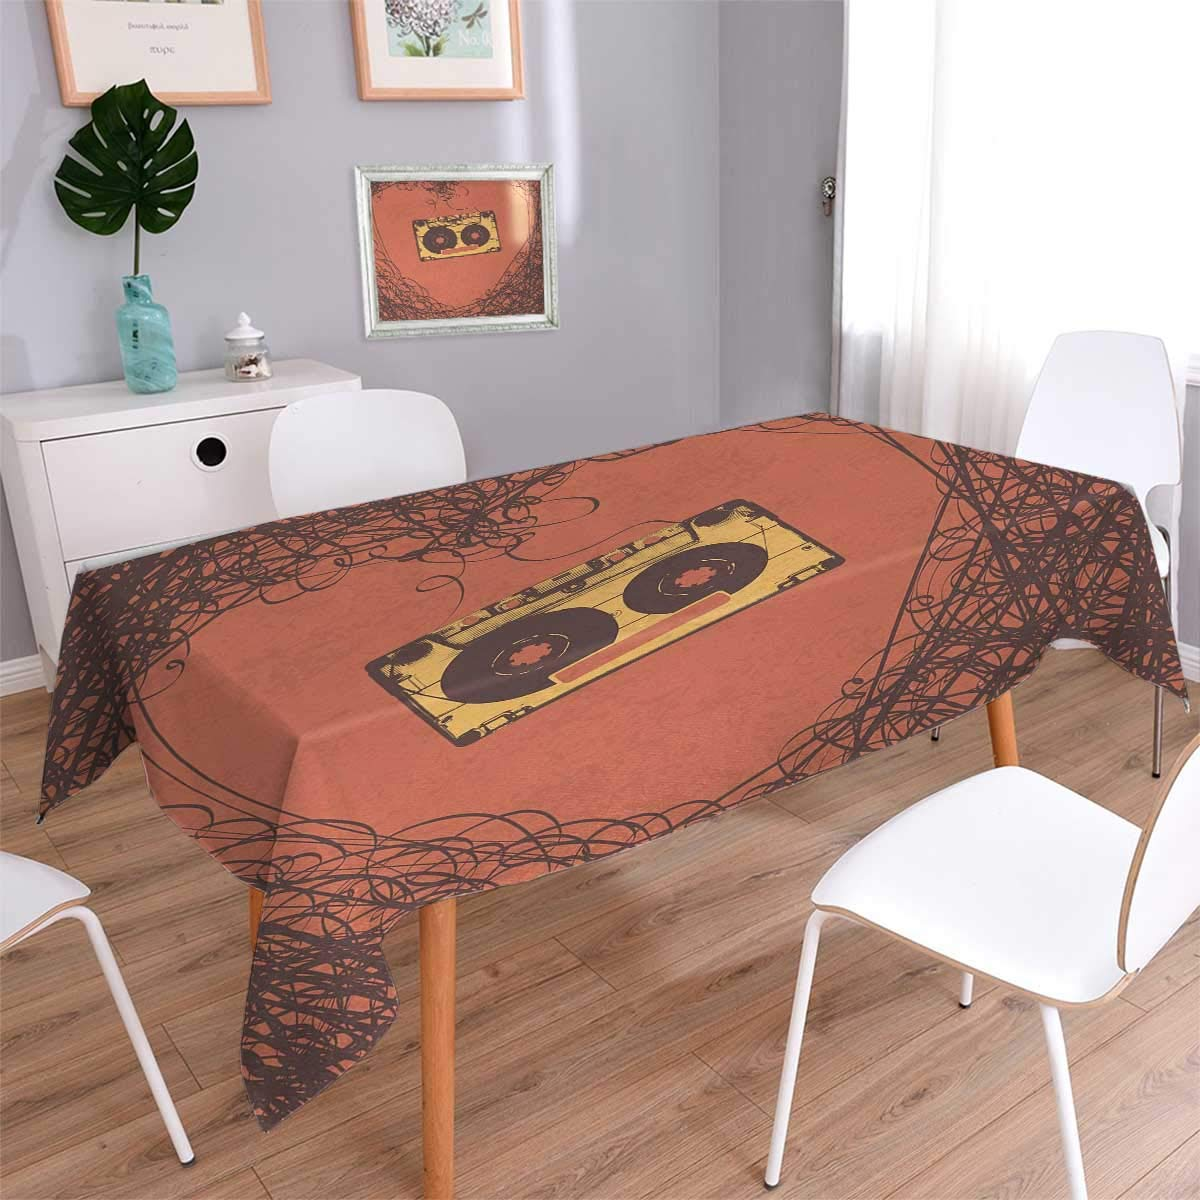 Miraculous Us 21 74 41 Off Music Table Cover Love Valentines Old Fashioned Elements Cassette Analogue Vintage Nostalgic Print Tablecloth Orange Brown In Download Free Architecture Designs Terchretrmadebymaigaardcom